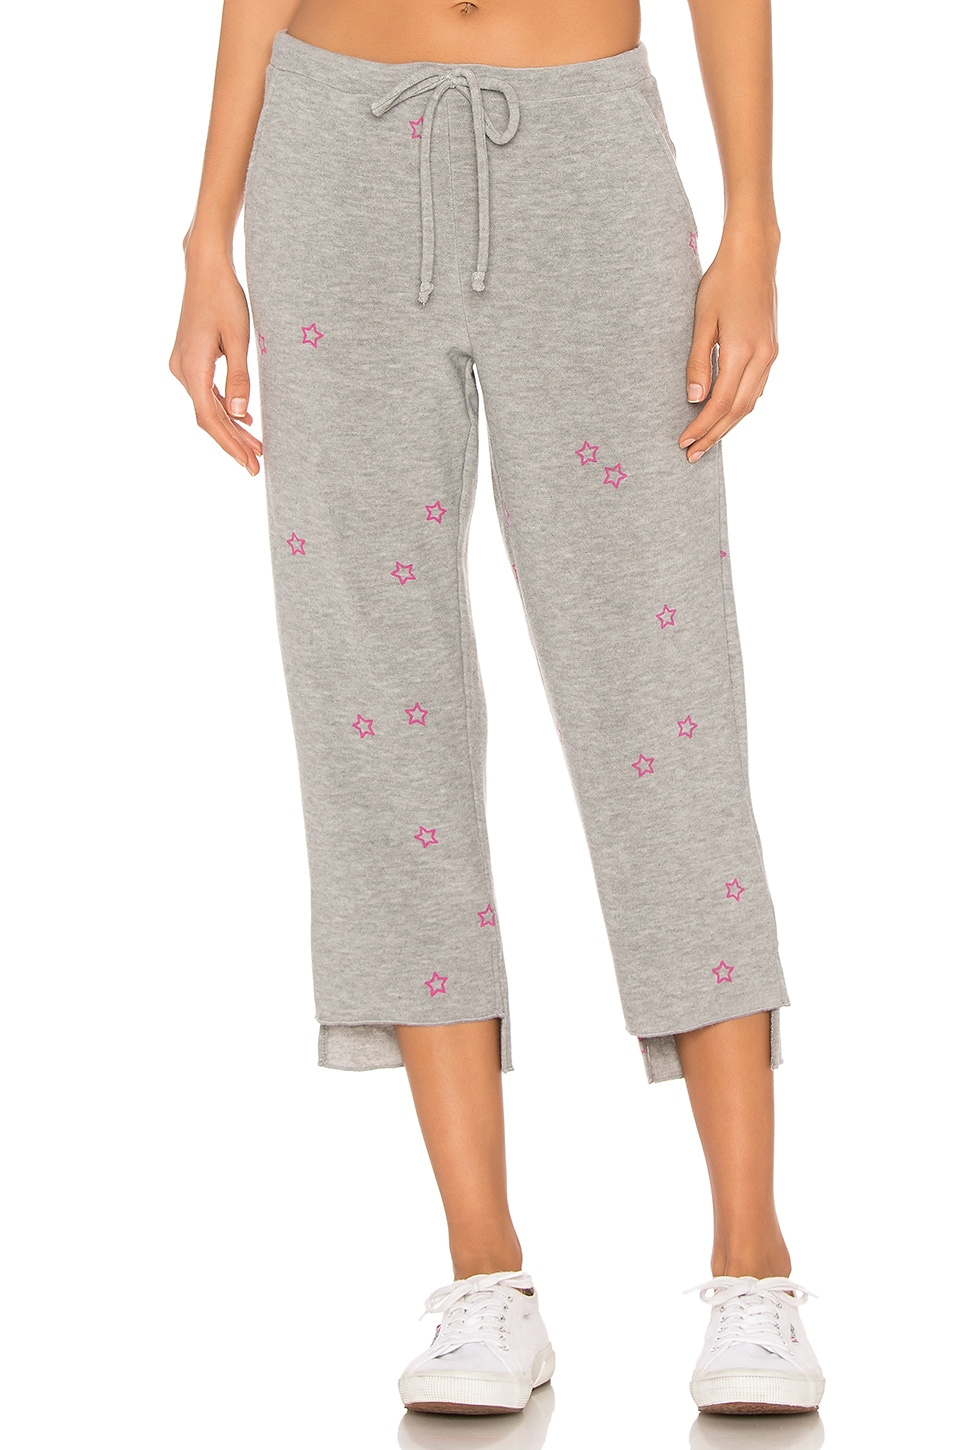 Chaser Pink Stars Pants in Heather Grey